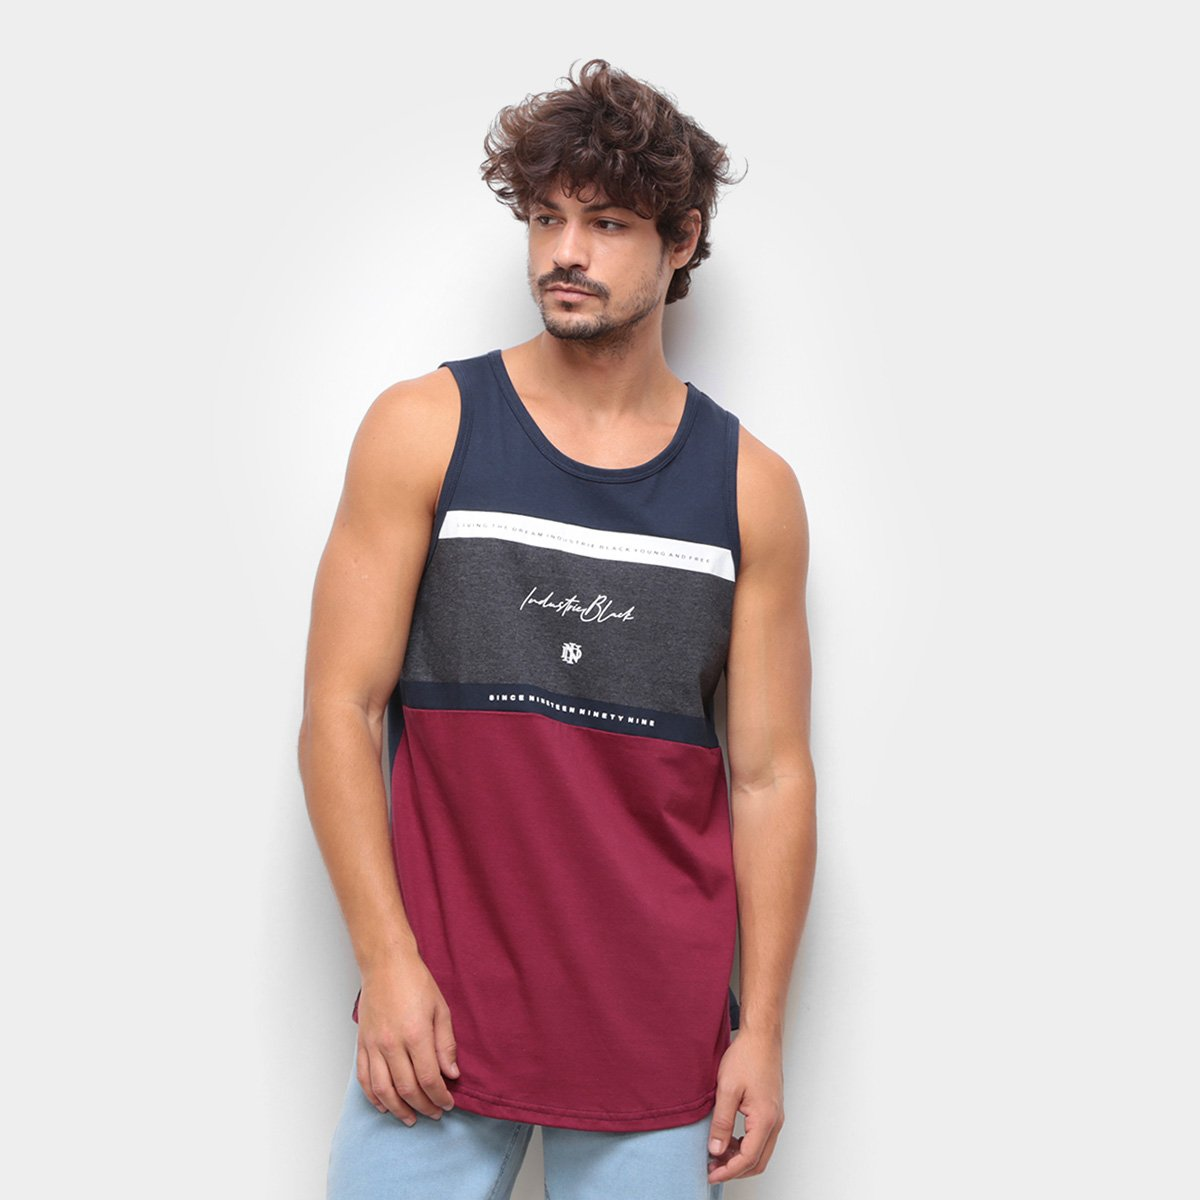 Regata Industrie Yong And Free Masculina